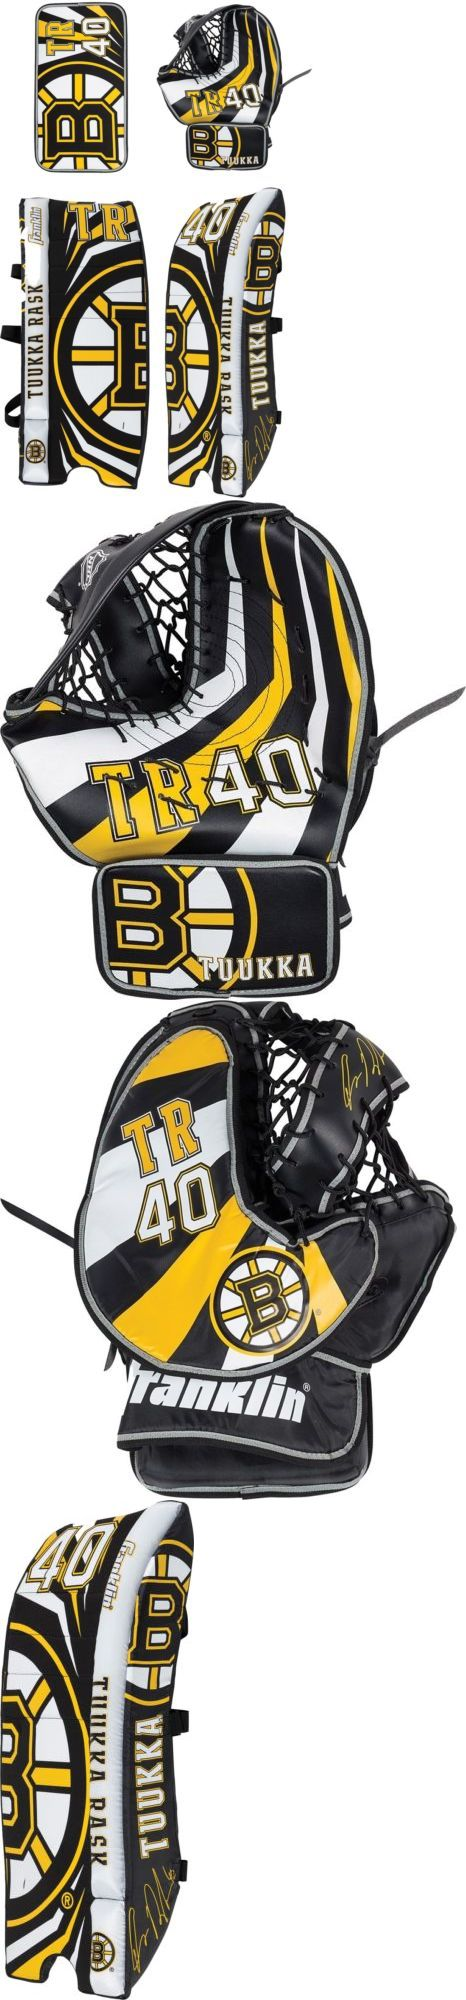 Gloves and Blockers 79763: Franklin Junior Tuukka Rask Street Hockey Goalie Pad Set -> BUY IT NOW ONLY: $231.95 on eBay!